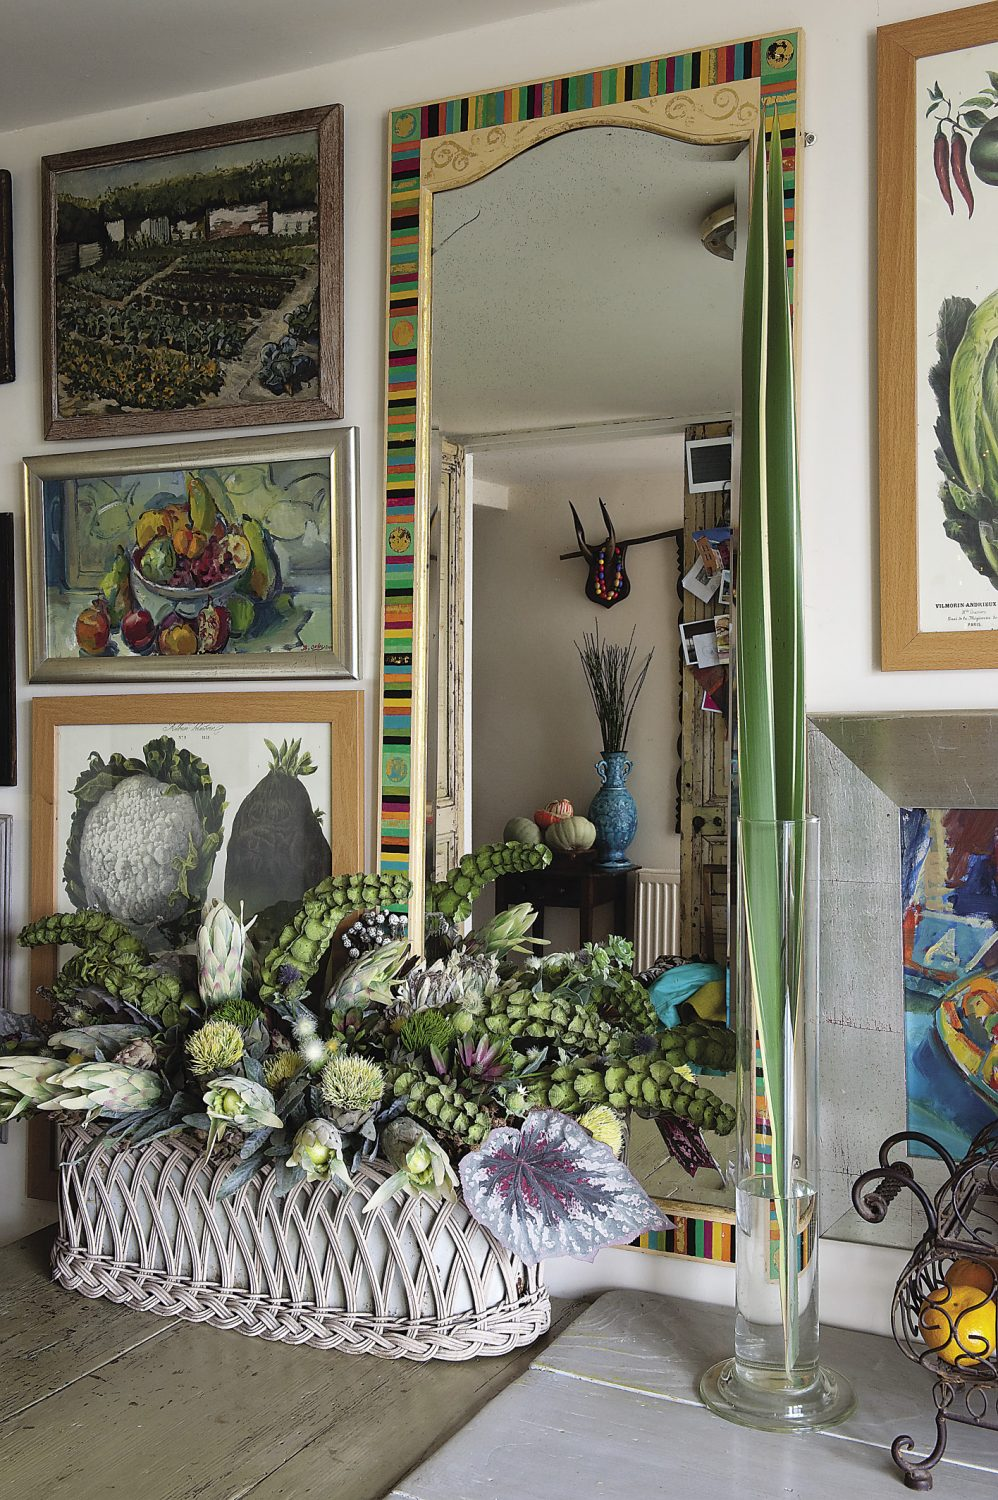 Helen is an avid collector, and her professional eye for display is evident throughout the house